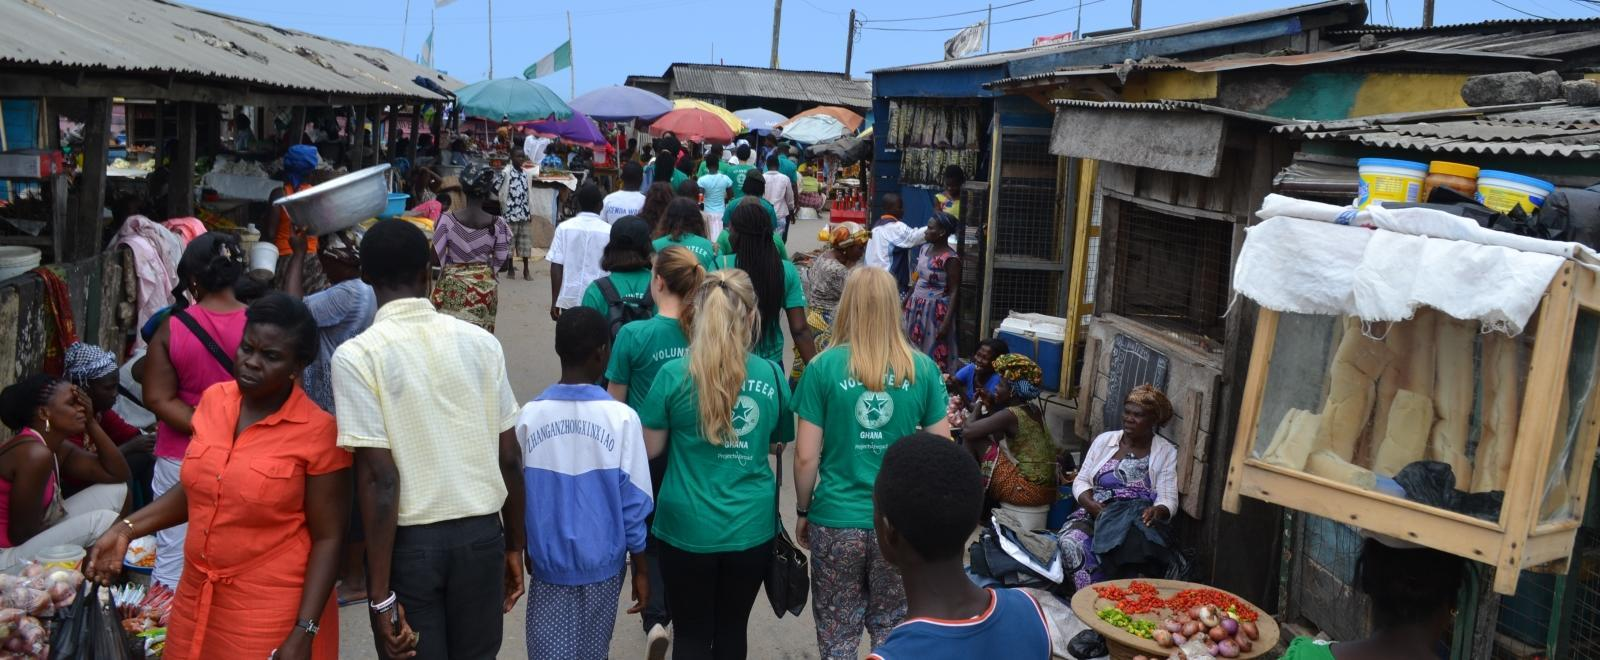 A Projects Abroad group visits a local community during their Human Rights internships in Ghana.